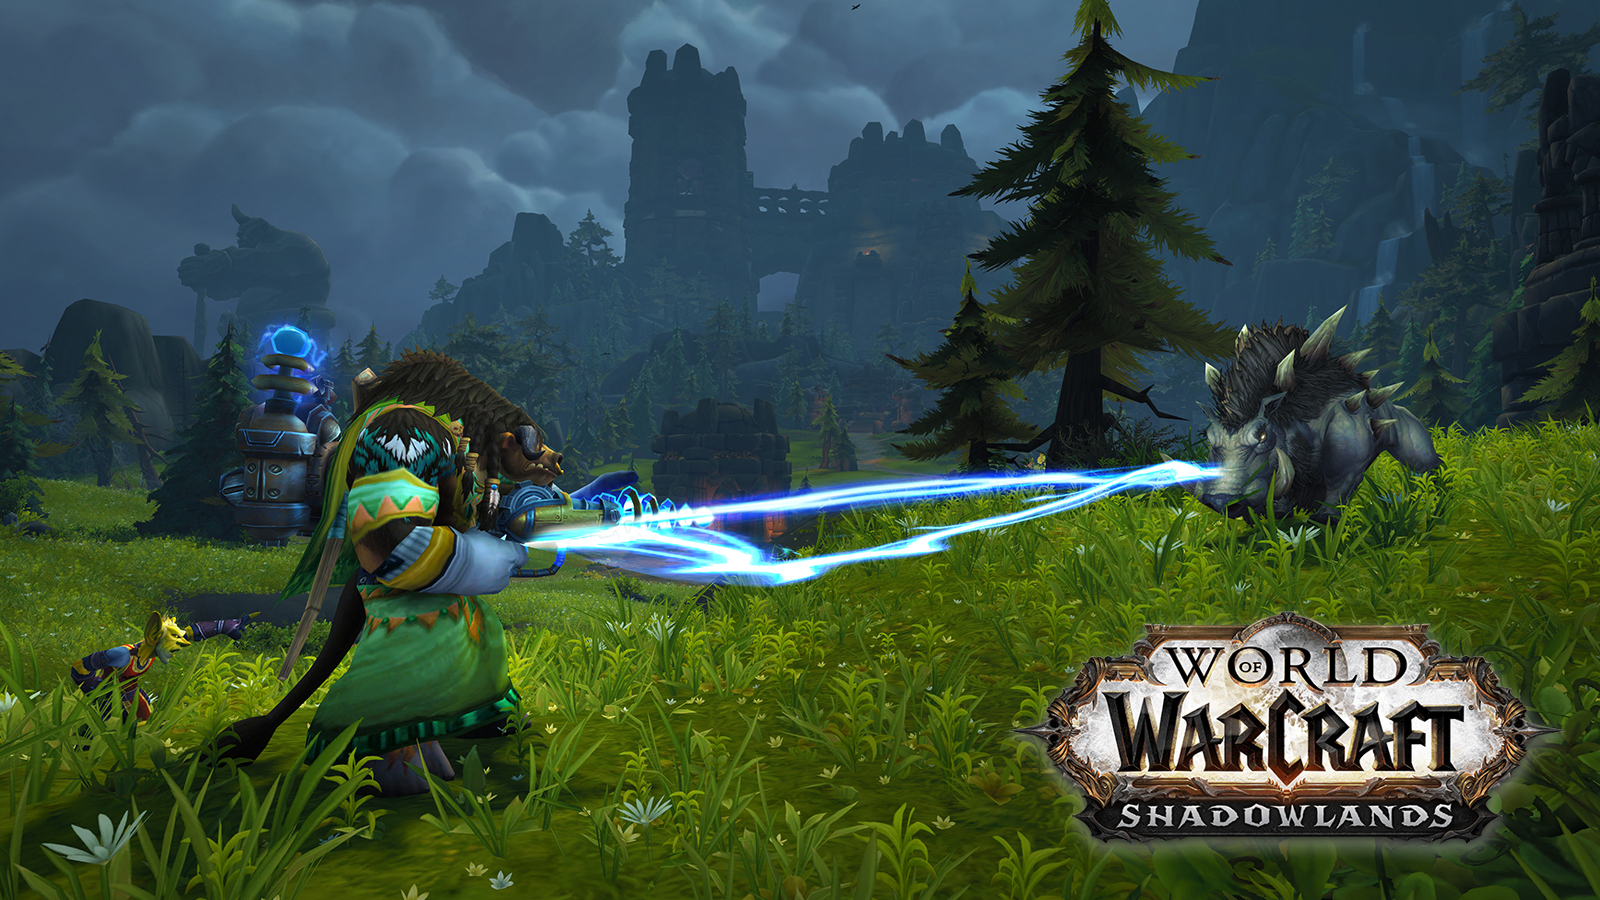 World of Warcraft Shadowlands Free Character Transfer